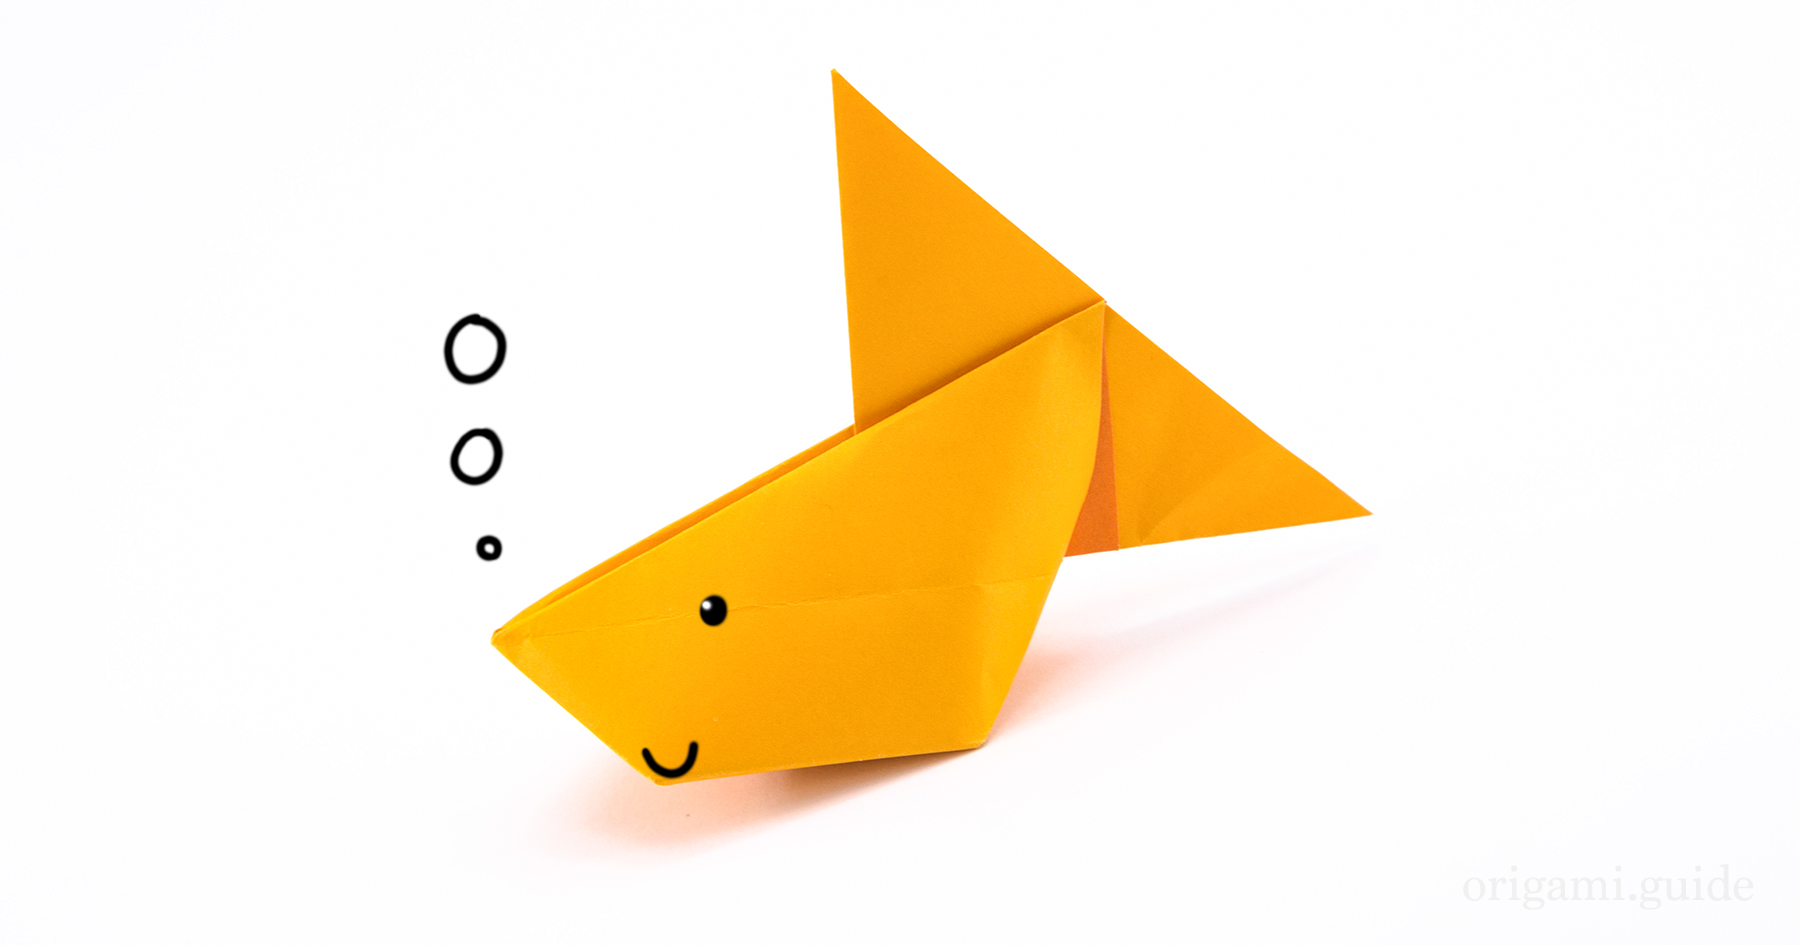 How To Make An Inflatable Origami Fish | Origami Guide ... - photo#11